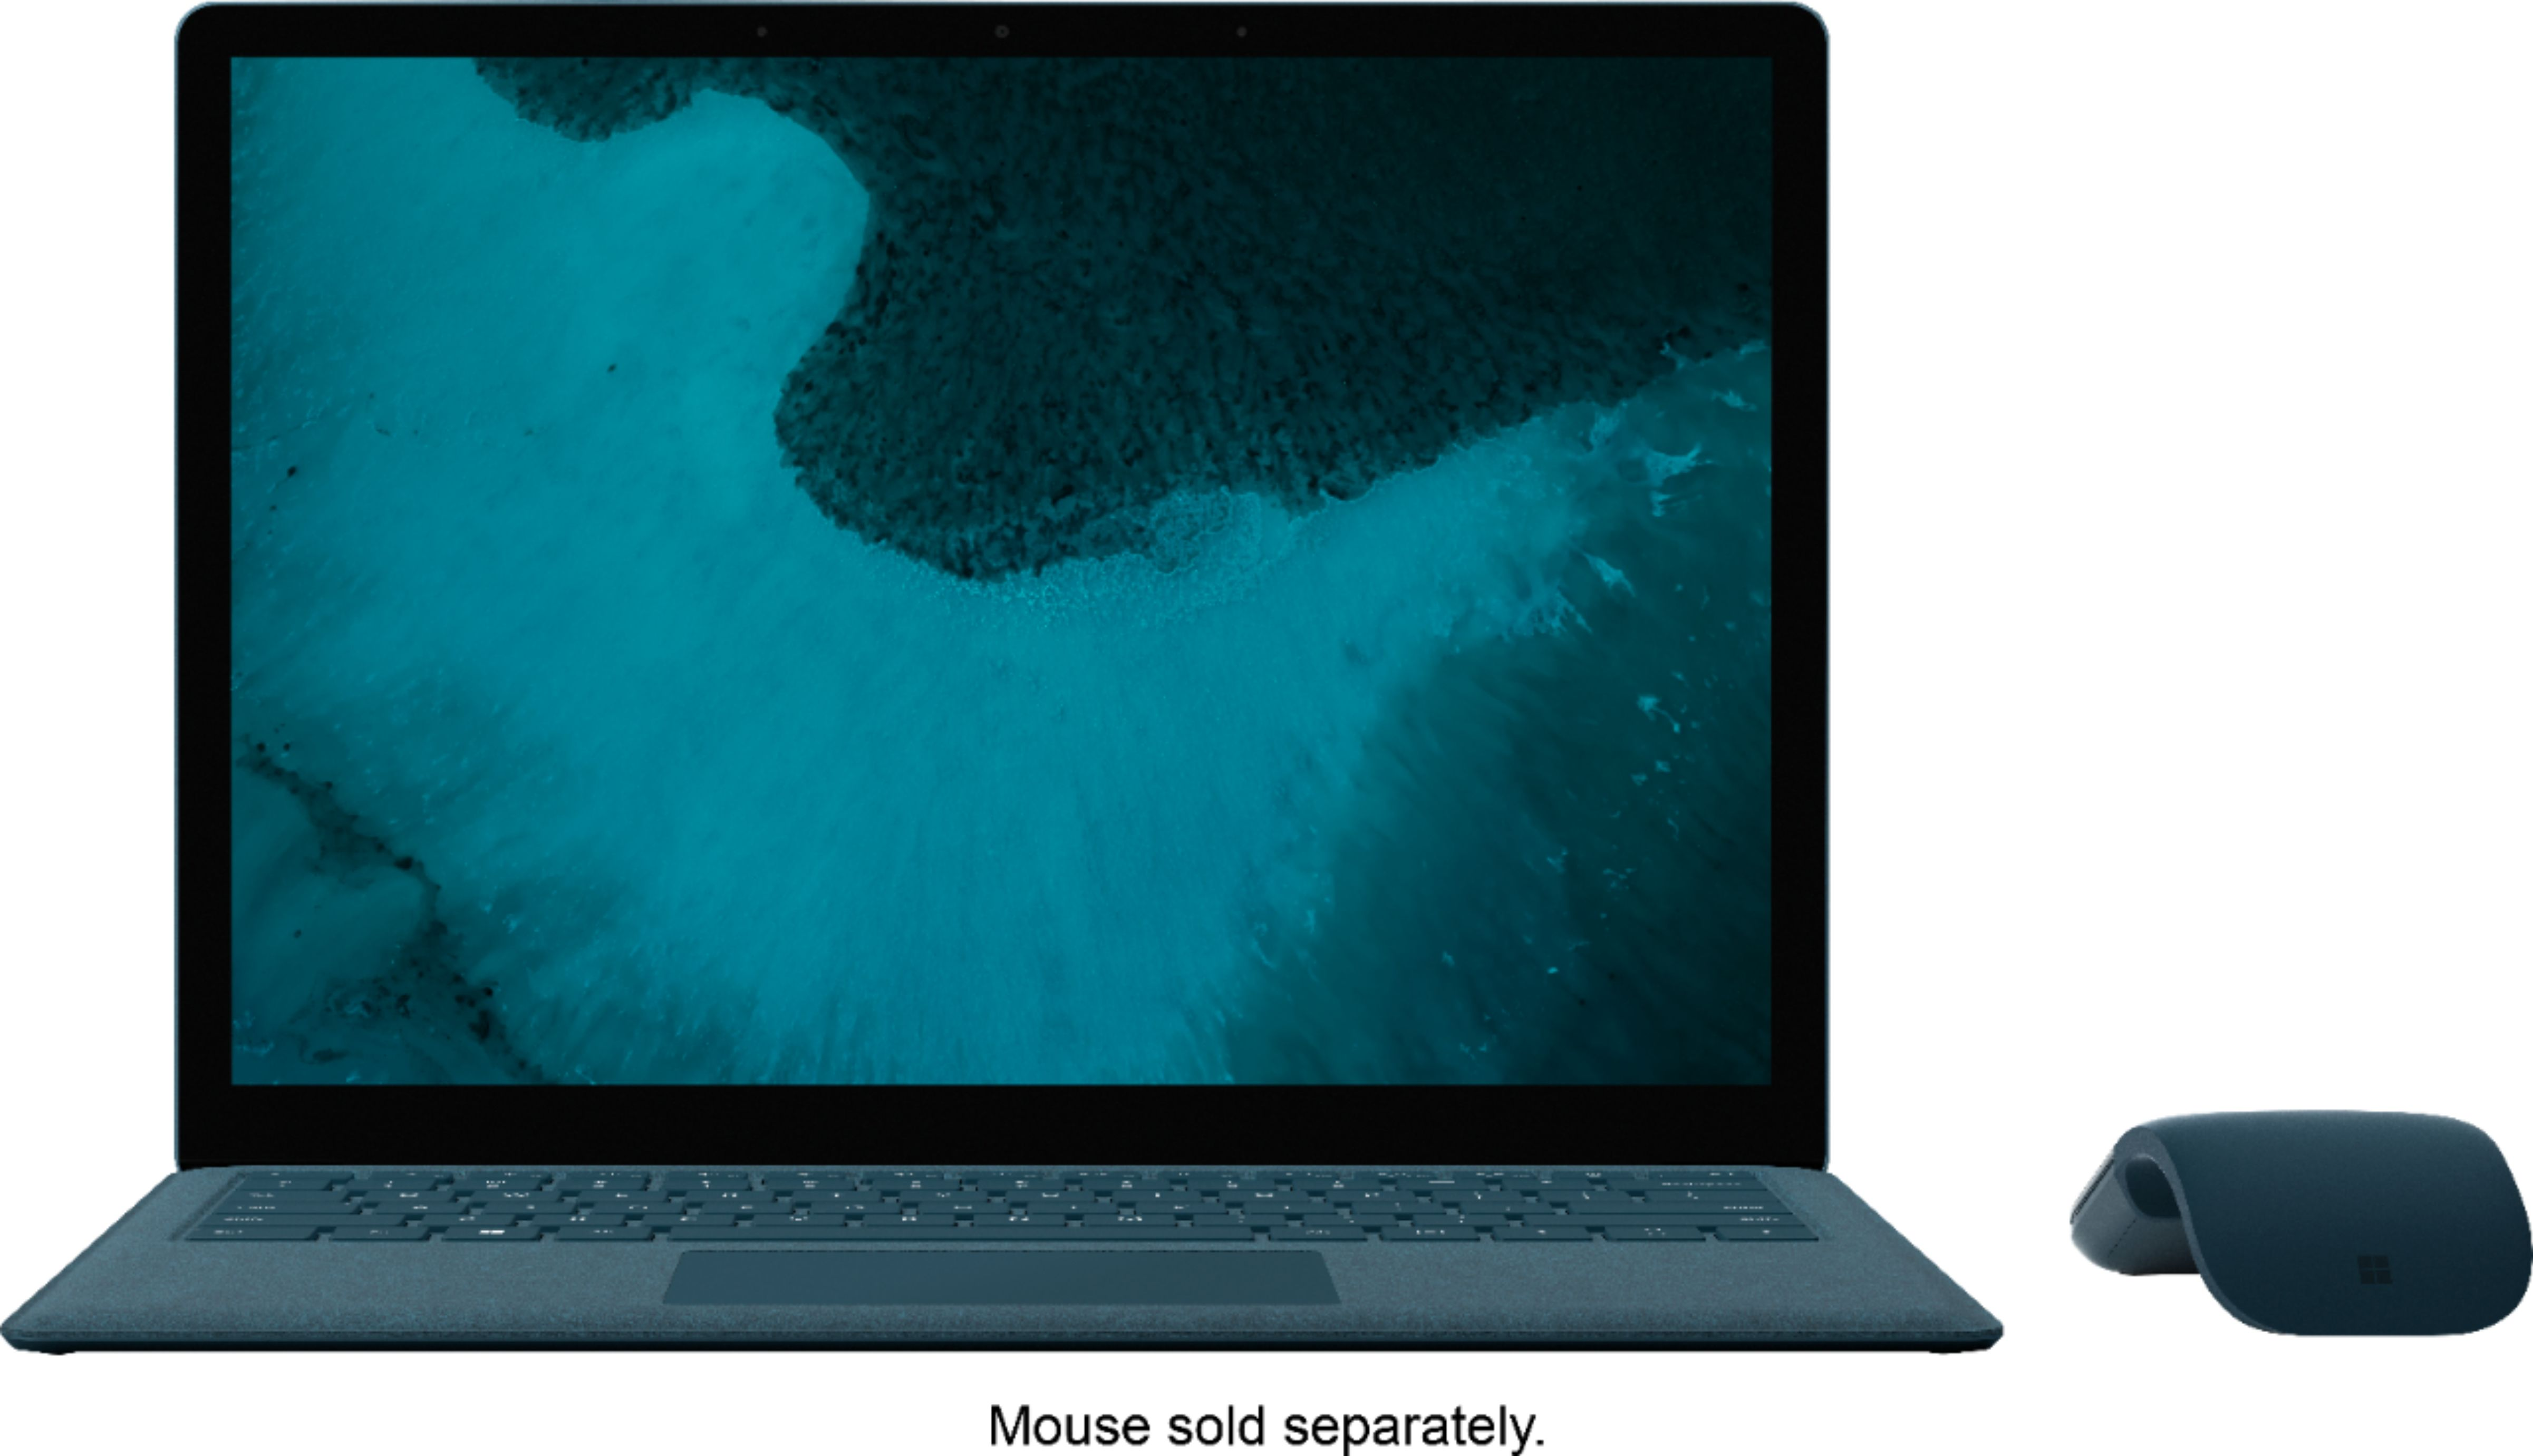 """Alt View Zoom 11. Microsoft - Geek Squad Certified Refurbished Surface Laptop 2 - 13.5"""" Touch Screen - Intel Core i5 - 8GB - 256GB SSD - Cobalt Blue."""